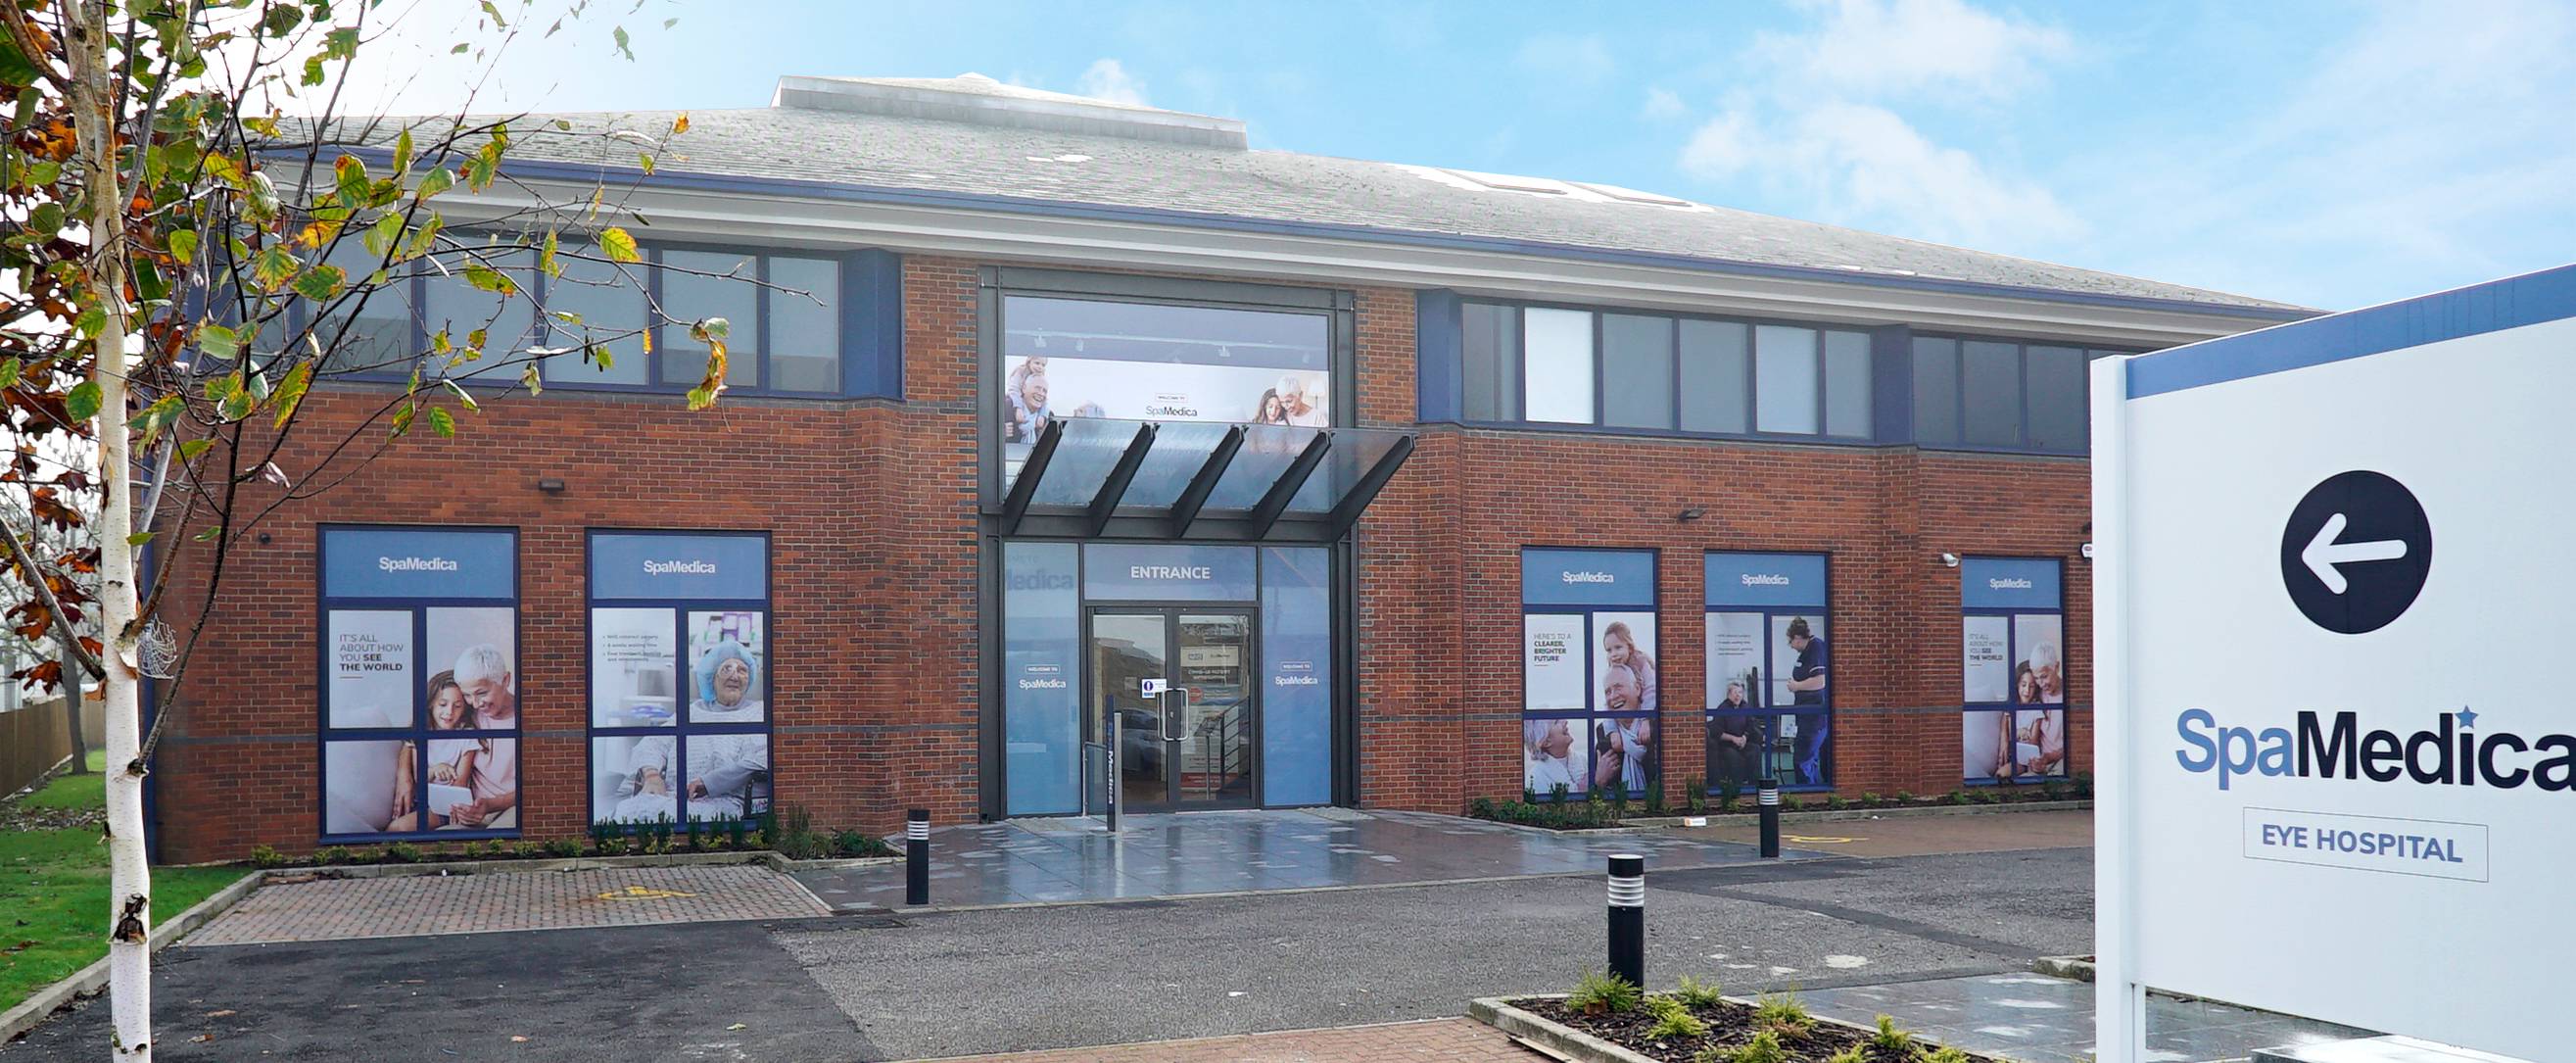 SpaMedica to Open their Latest Hospital in Wokingham